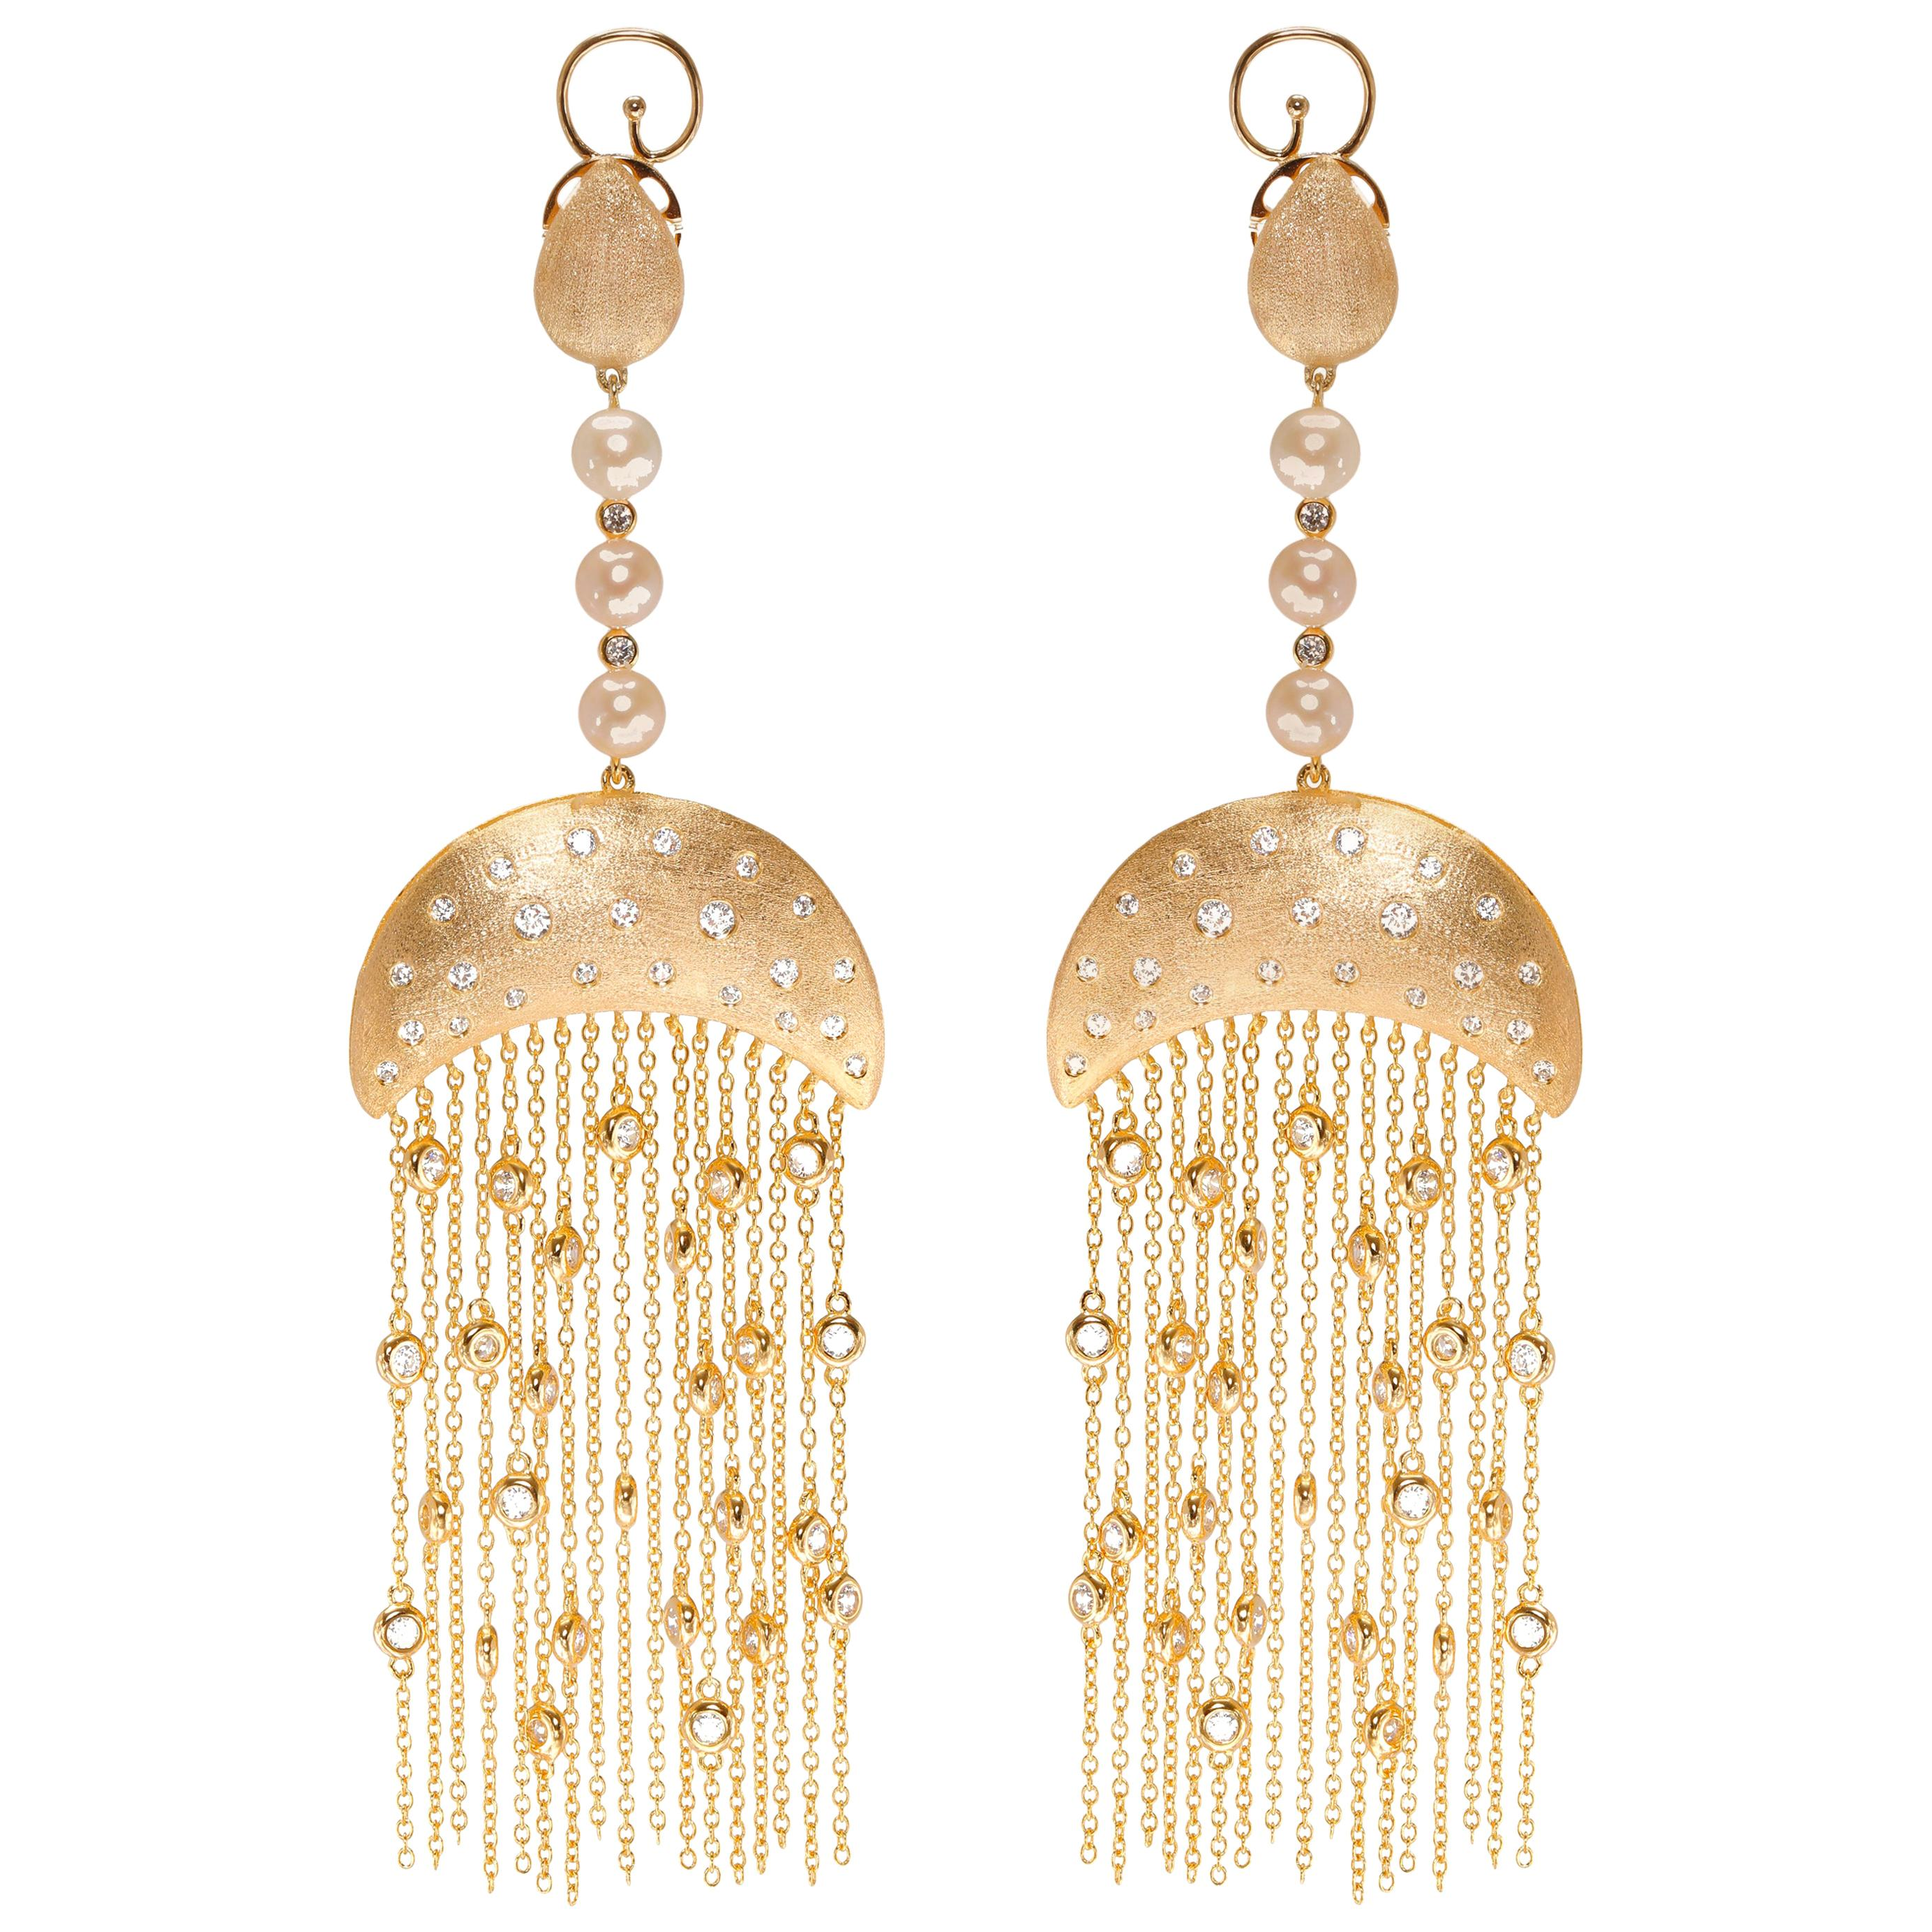 Ammanii Vermeil Gold Drop Earrings with Freshwater Pearls and Tassels